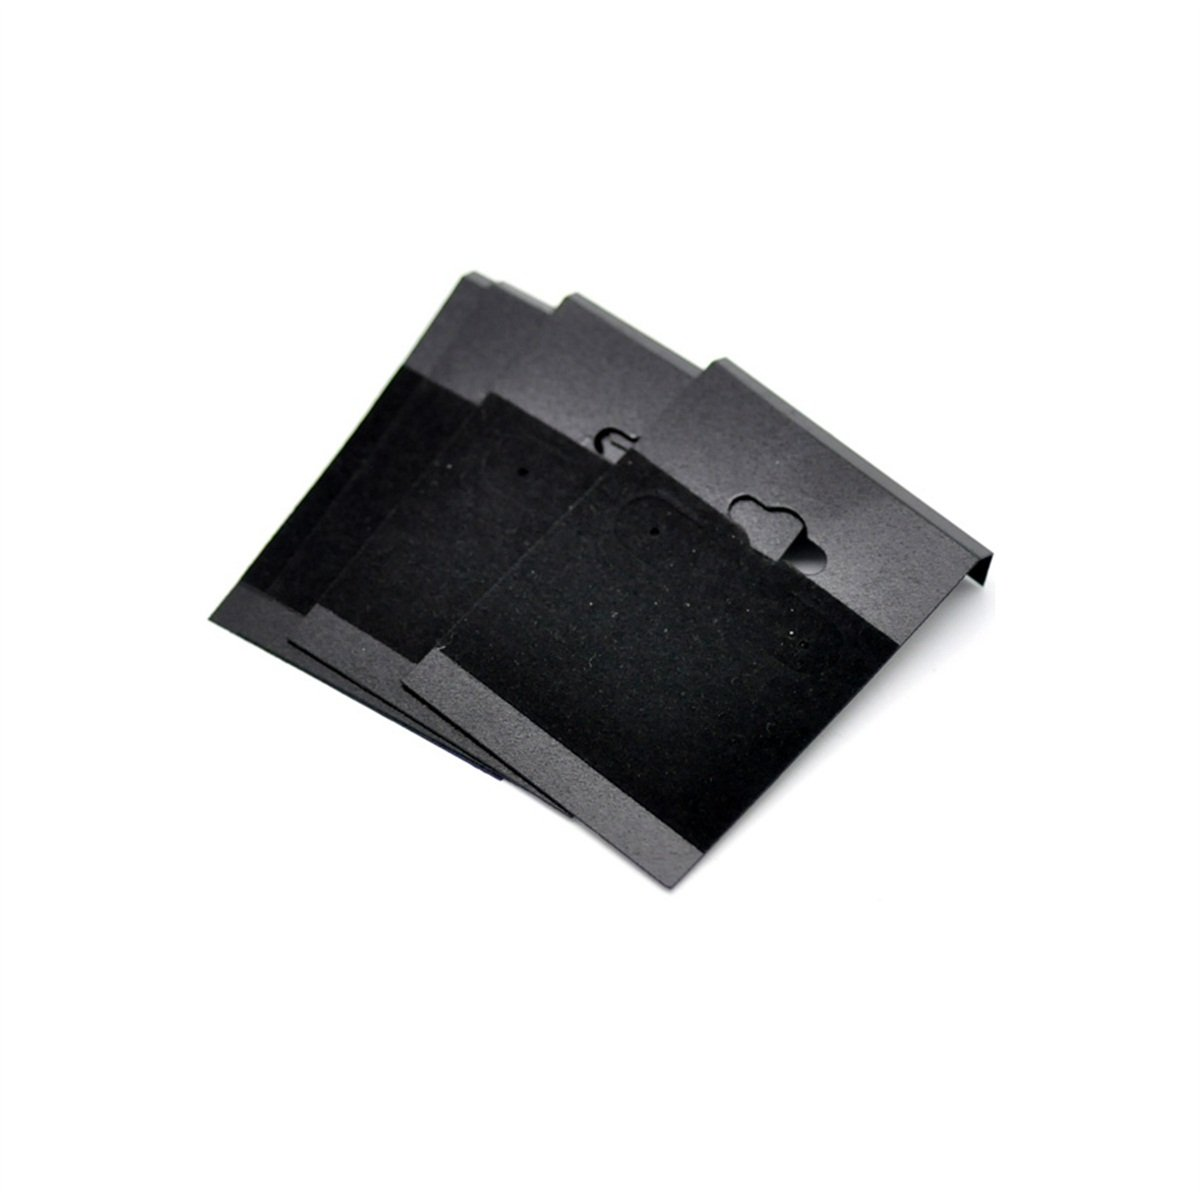 50 PCS Black Necklace/Earring Jewelry Display Square Cards New Retail Display Organizer Stand 6.2x4.5cm(2-1/2x1-3/4) kuoyue